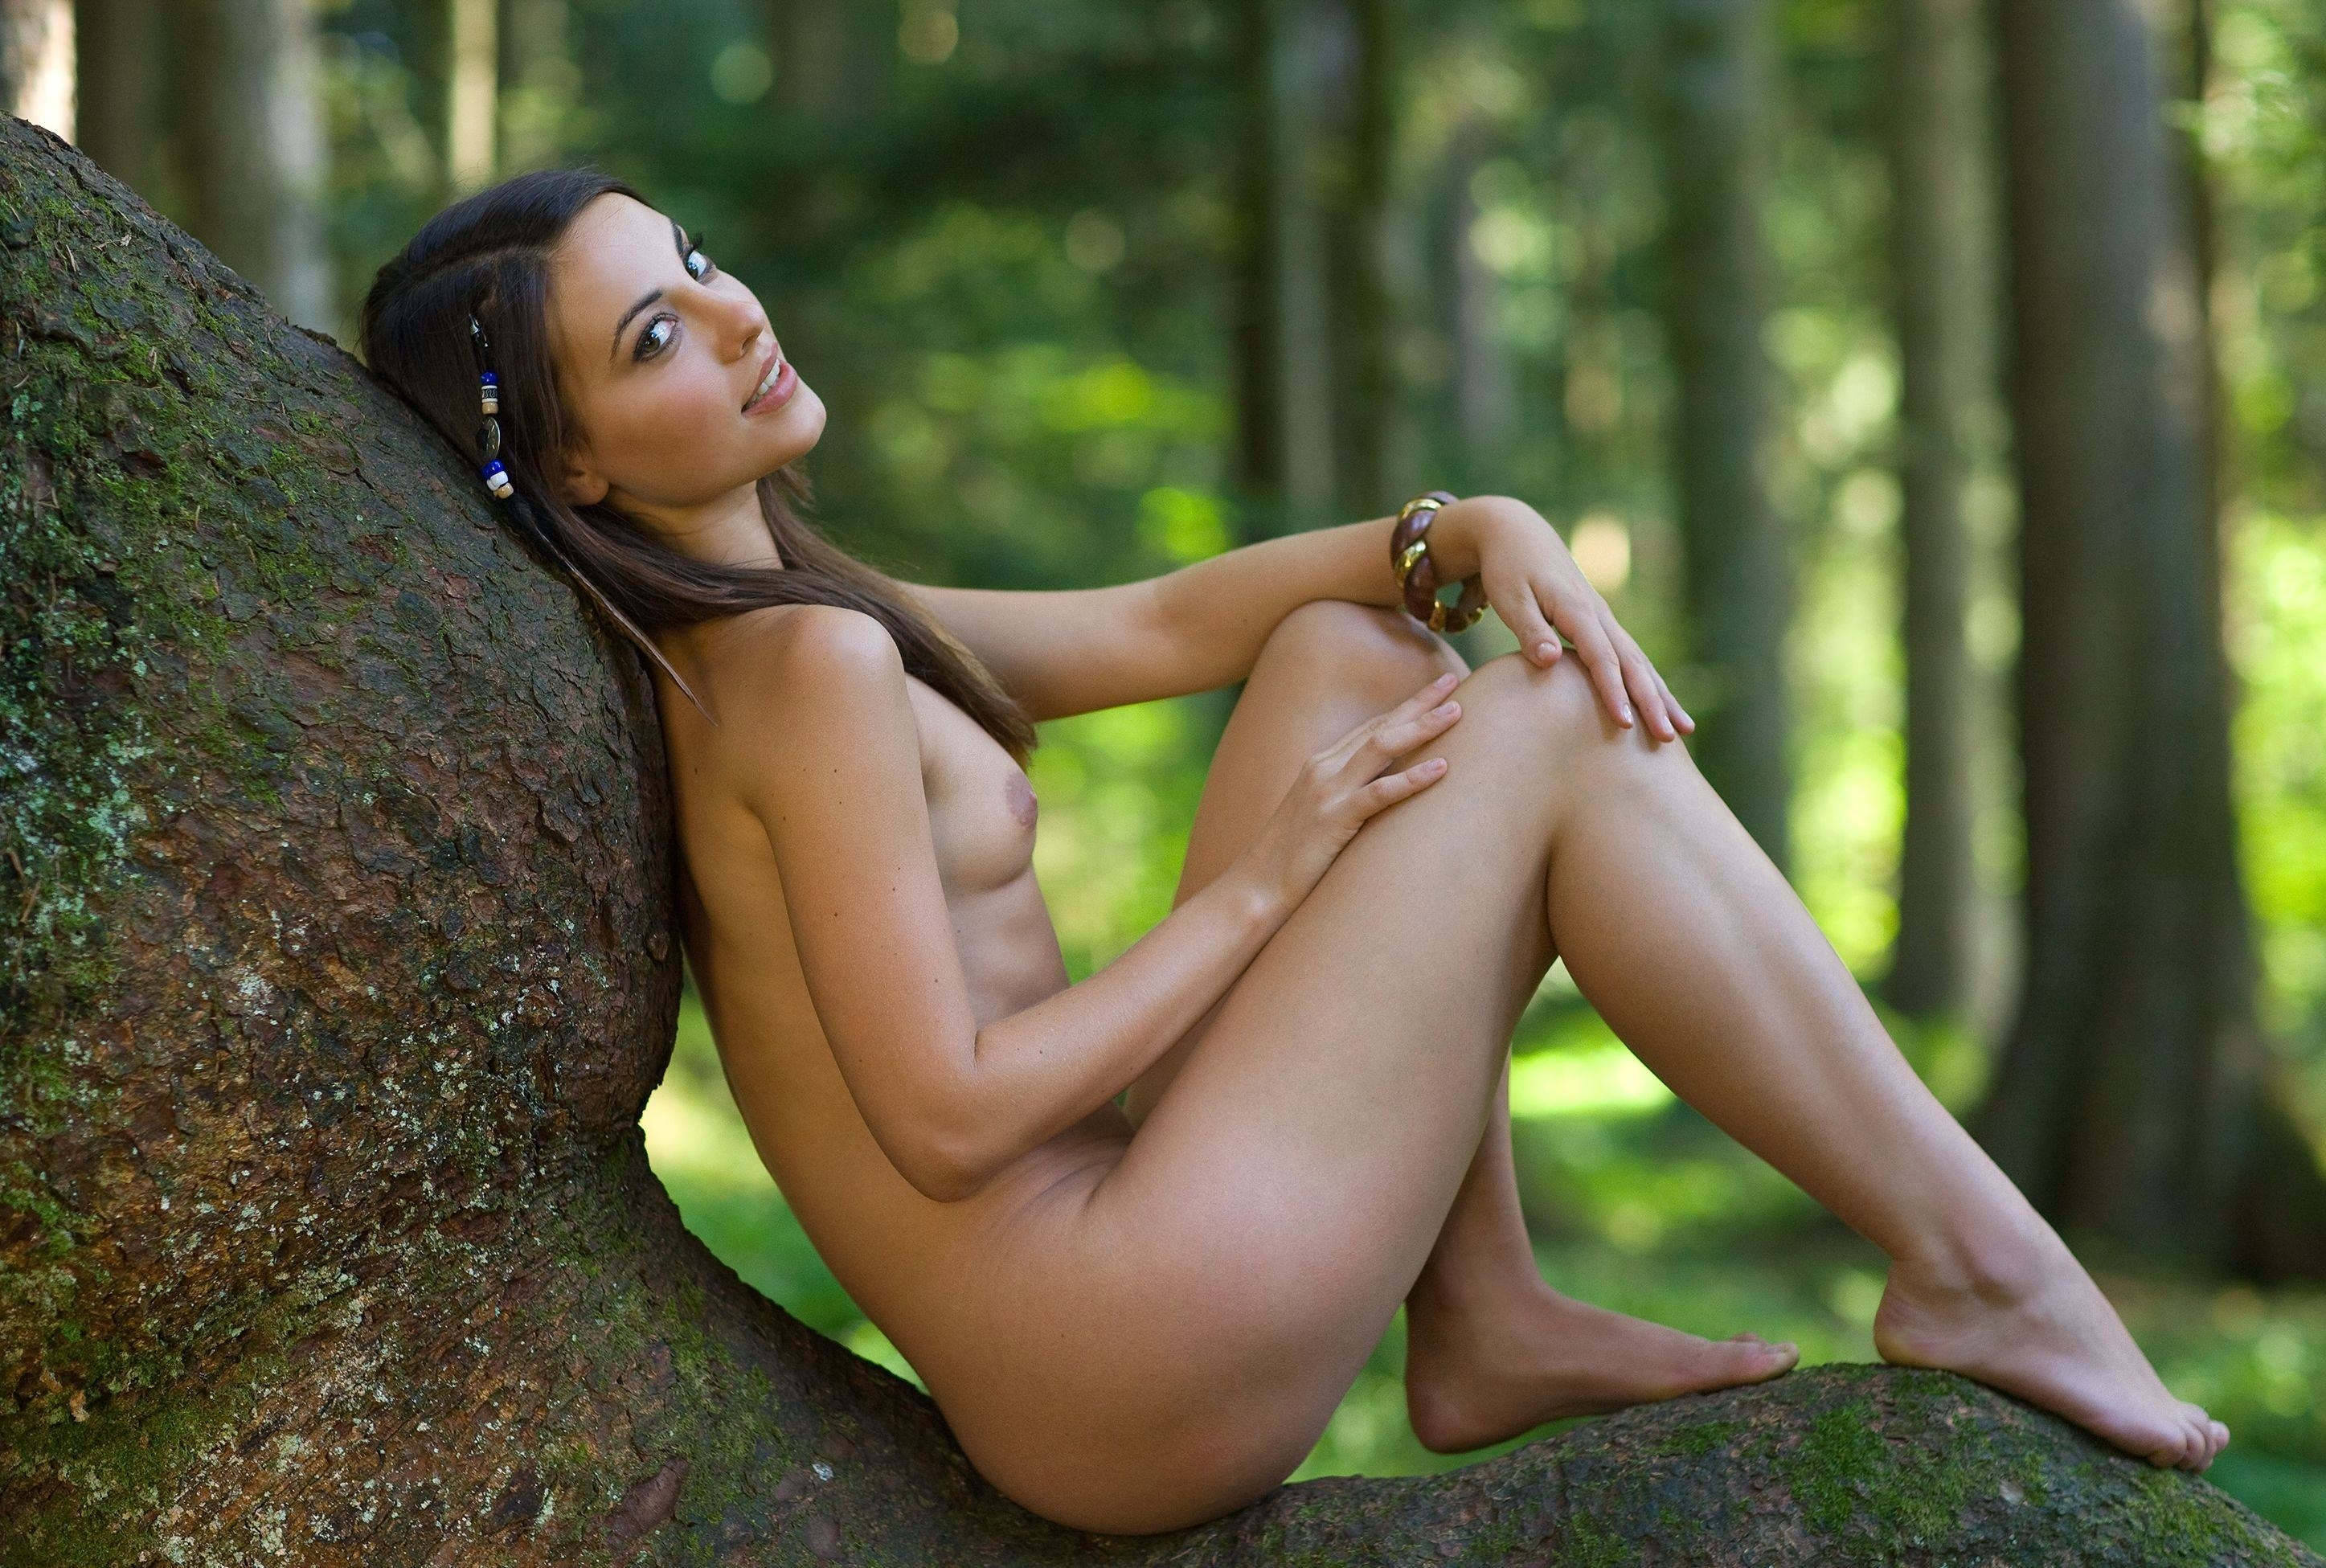 Beautiful model with big tits gloria sol posing naked outdoors